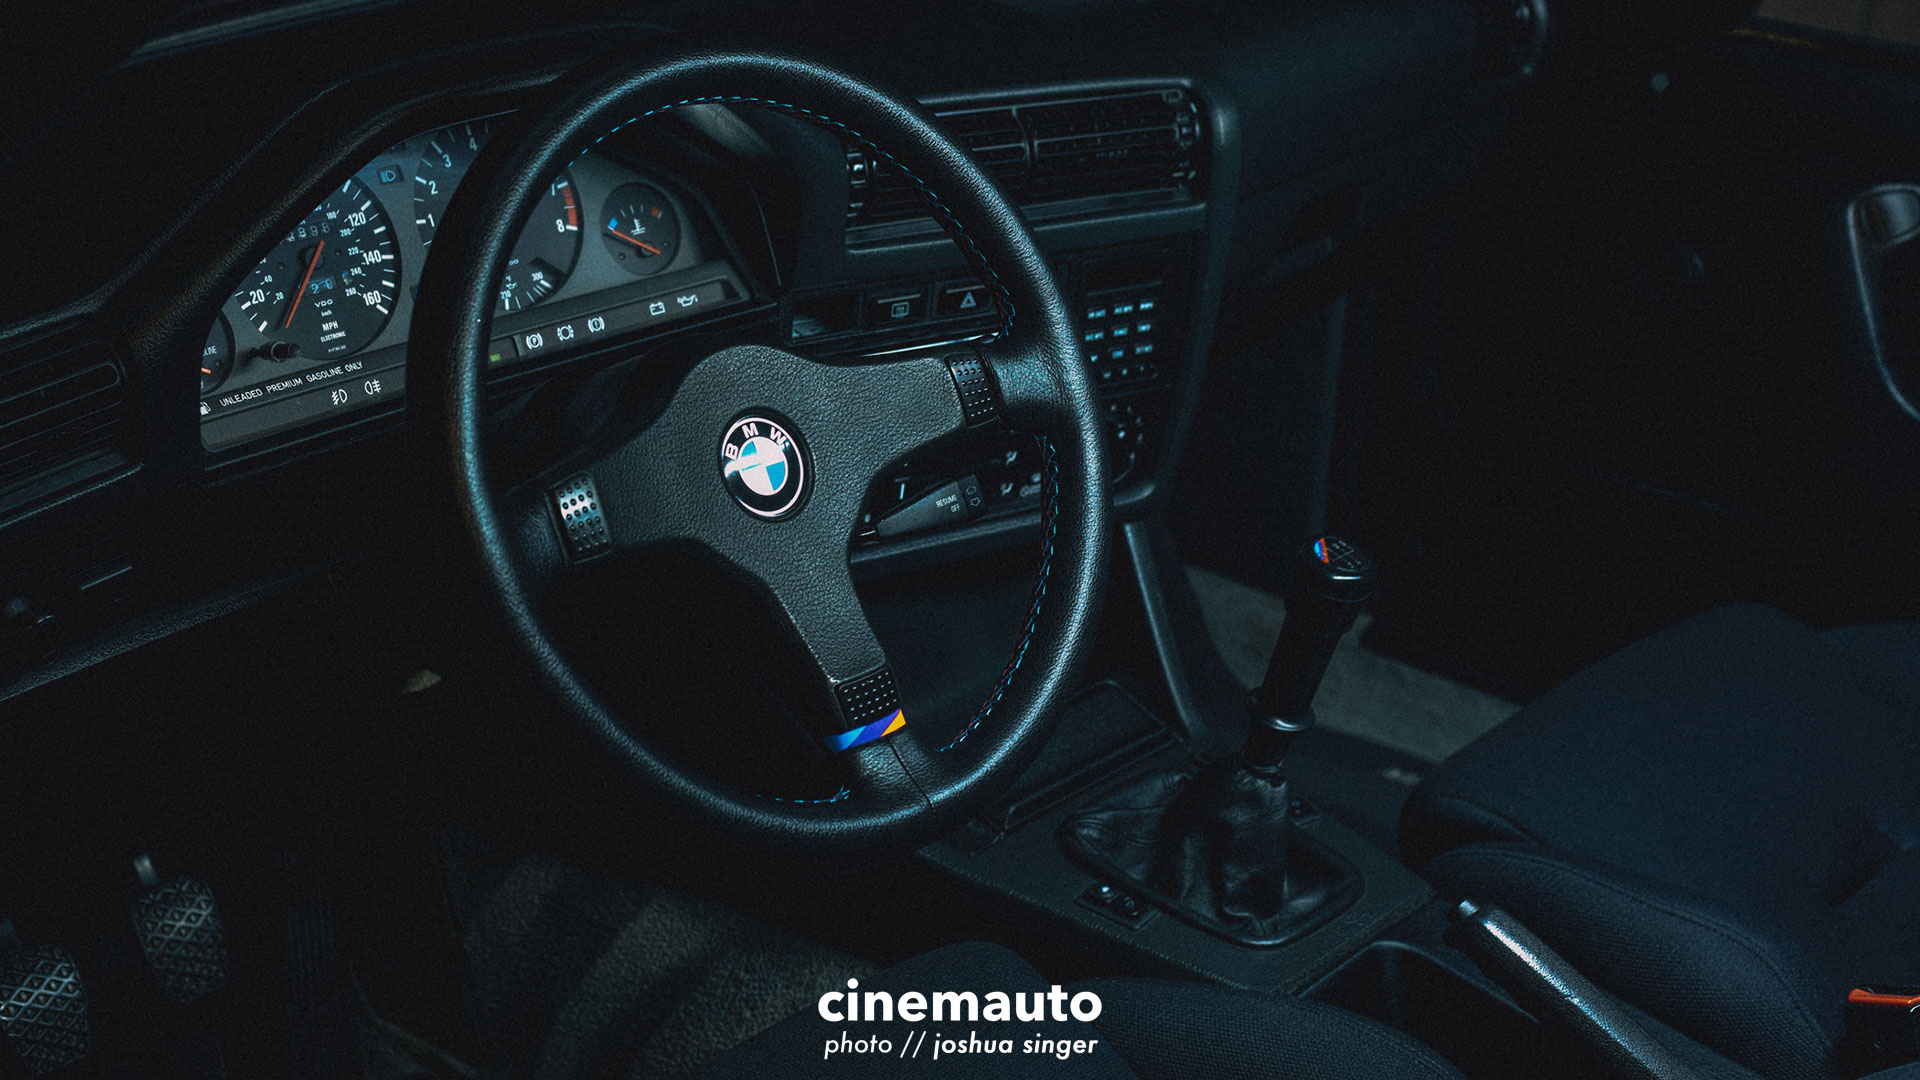 cinemauto-wichita-automotive-videography-midwest-car-cinematography-kk8.jpg